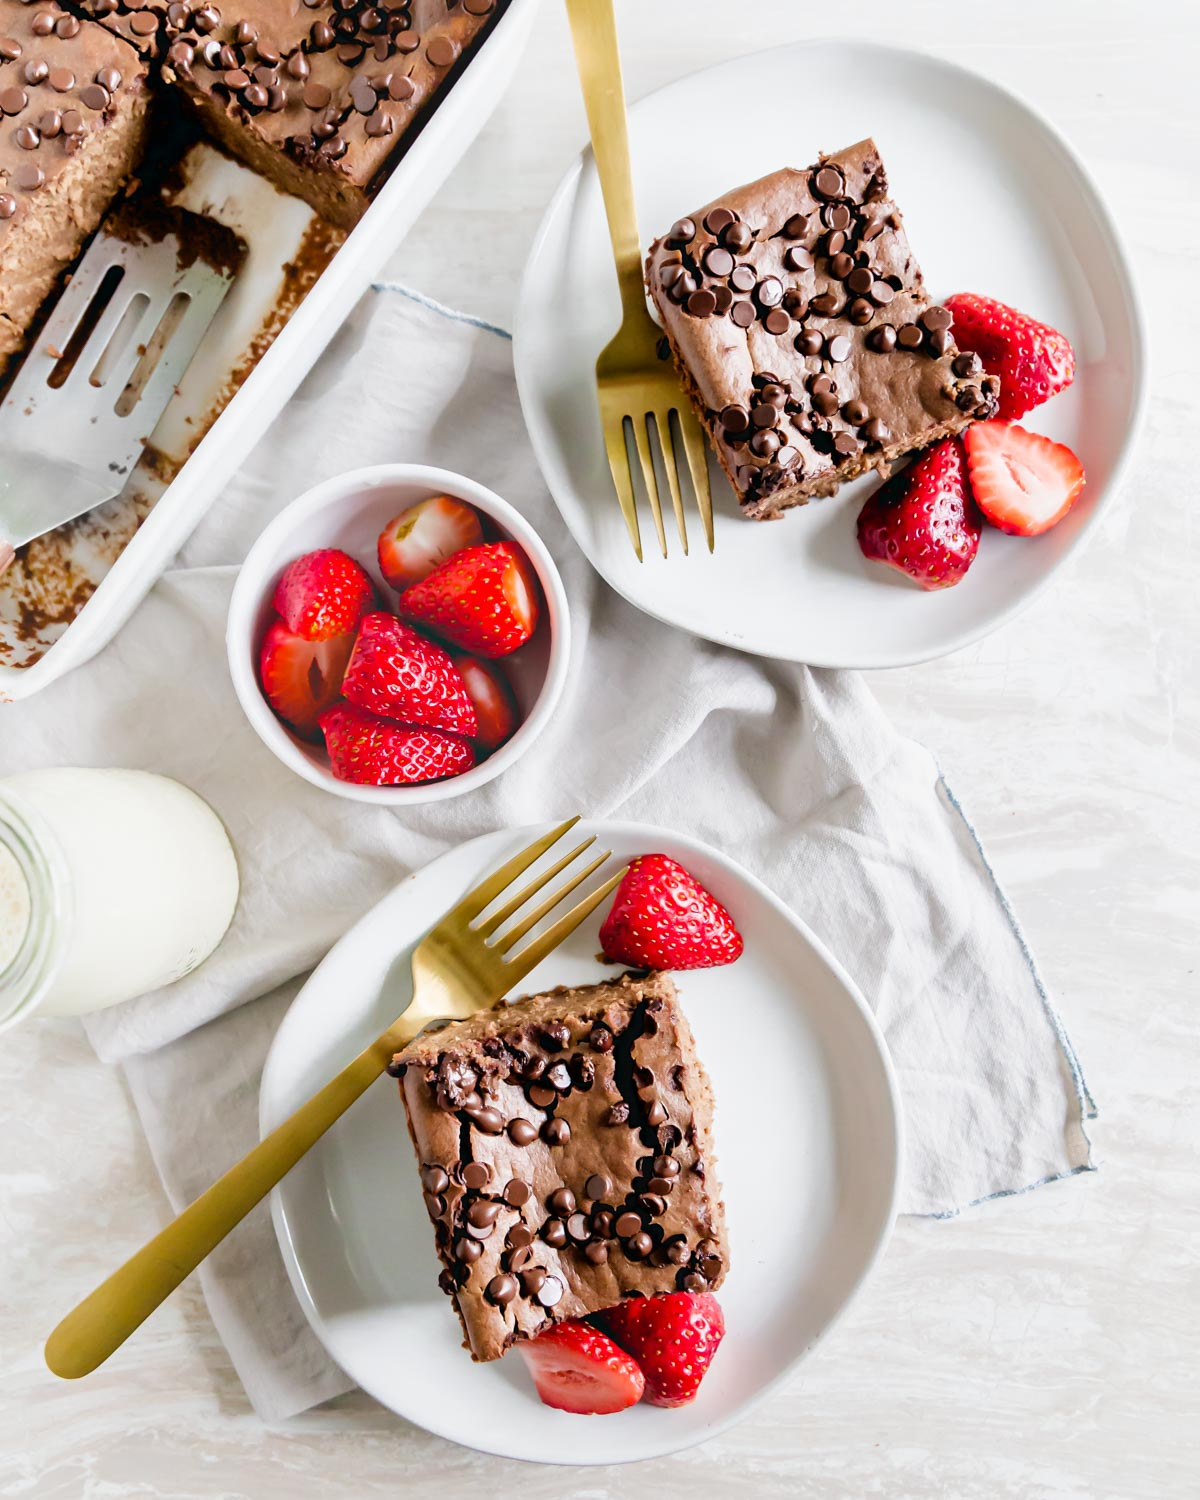 Two slices of baked chocolate oats on plates garnished with fresh strawberries for serving.